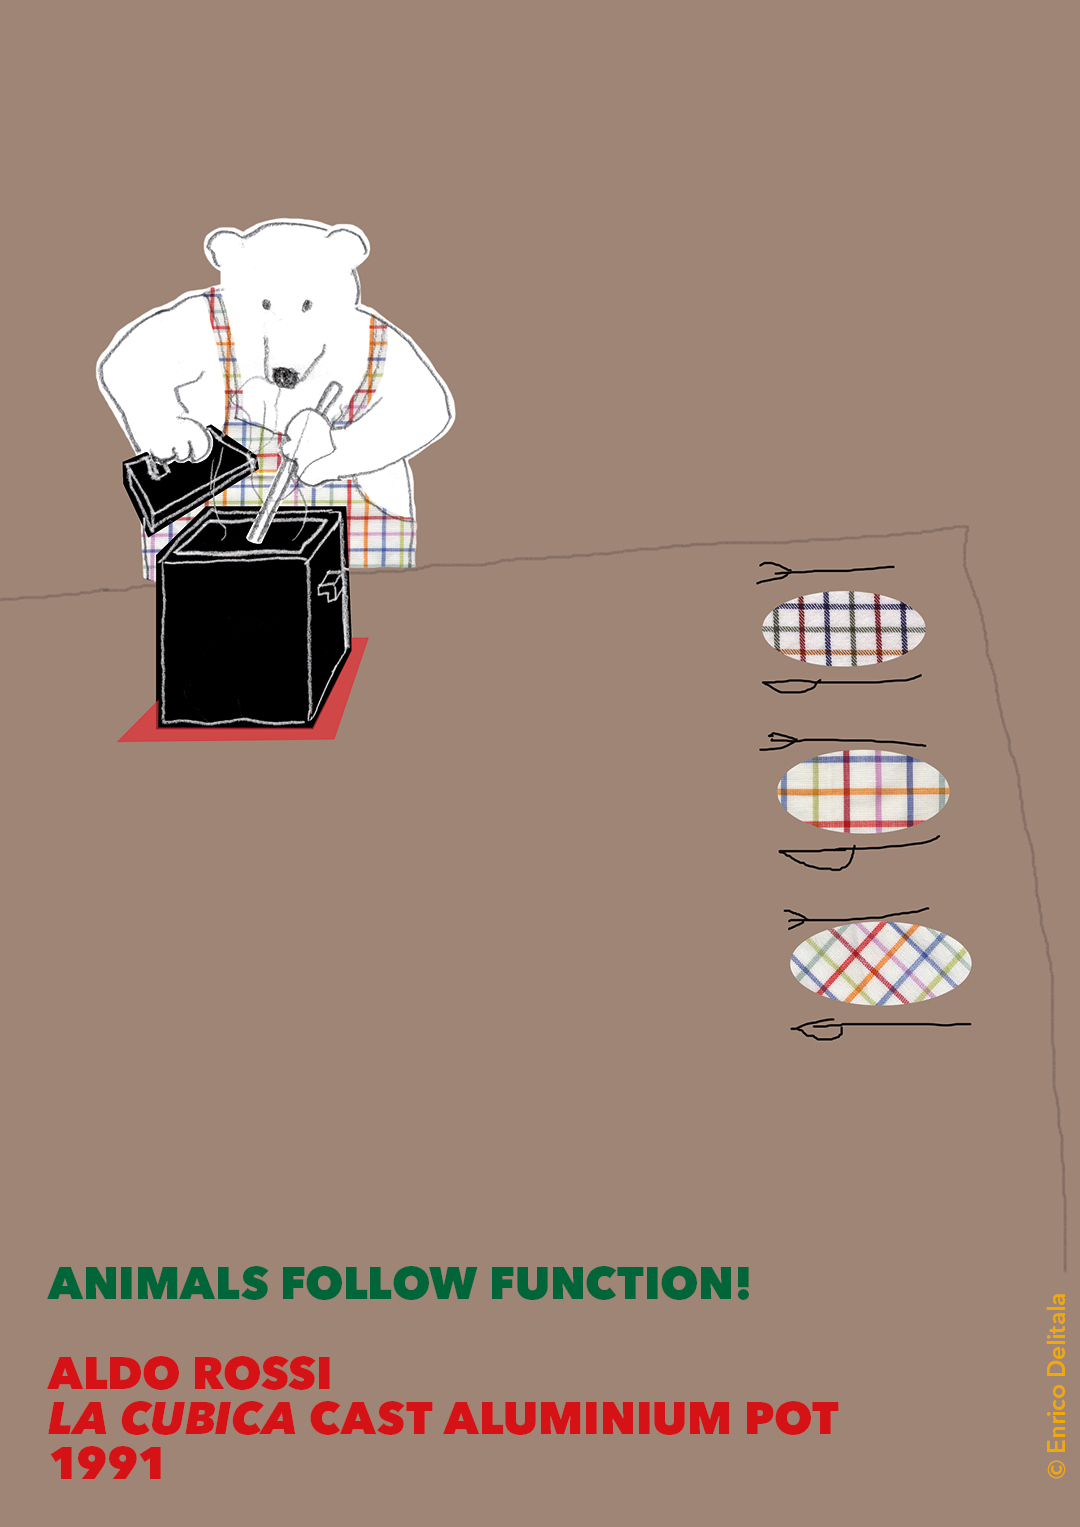 Orso: Enrico Delitala illustrator animals follow function form follows function Aldo Rossi La cubica